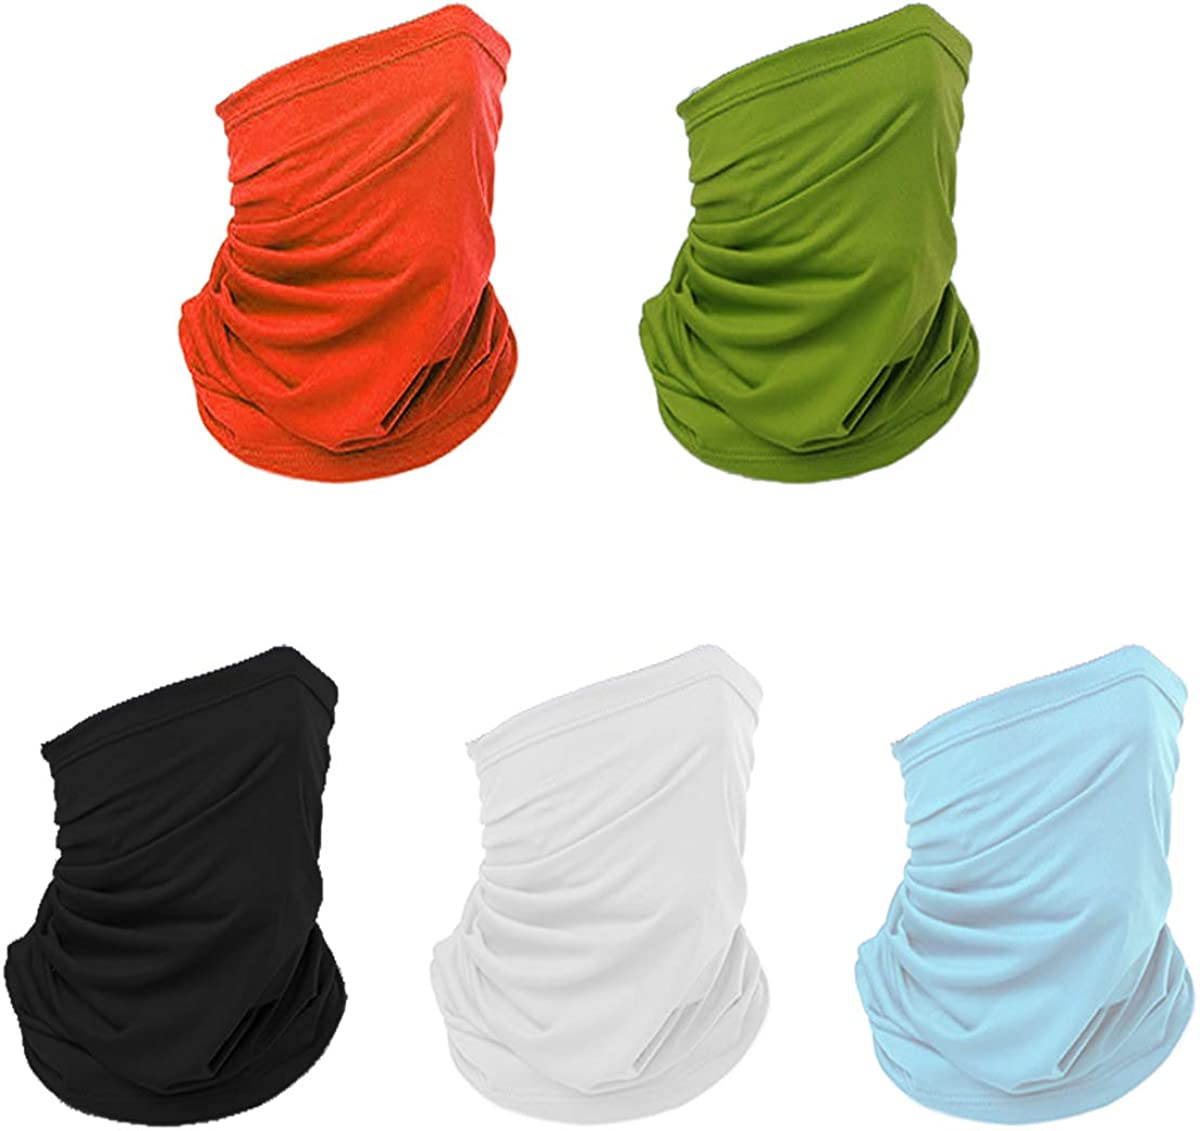 UPF 50+ Ultimate UV Sun Mask Dust Wind Neck Gaiter Great Sun Protection in The Summer and Winter Scarf poshei 2 in1 Bandanas /& Face Mask Sailing, Face mask Headband Half Face Mask for Fishing